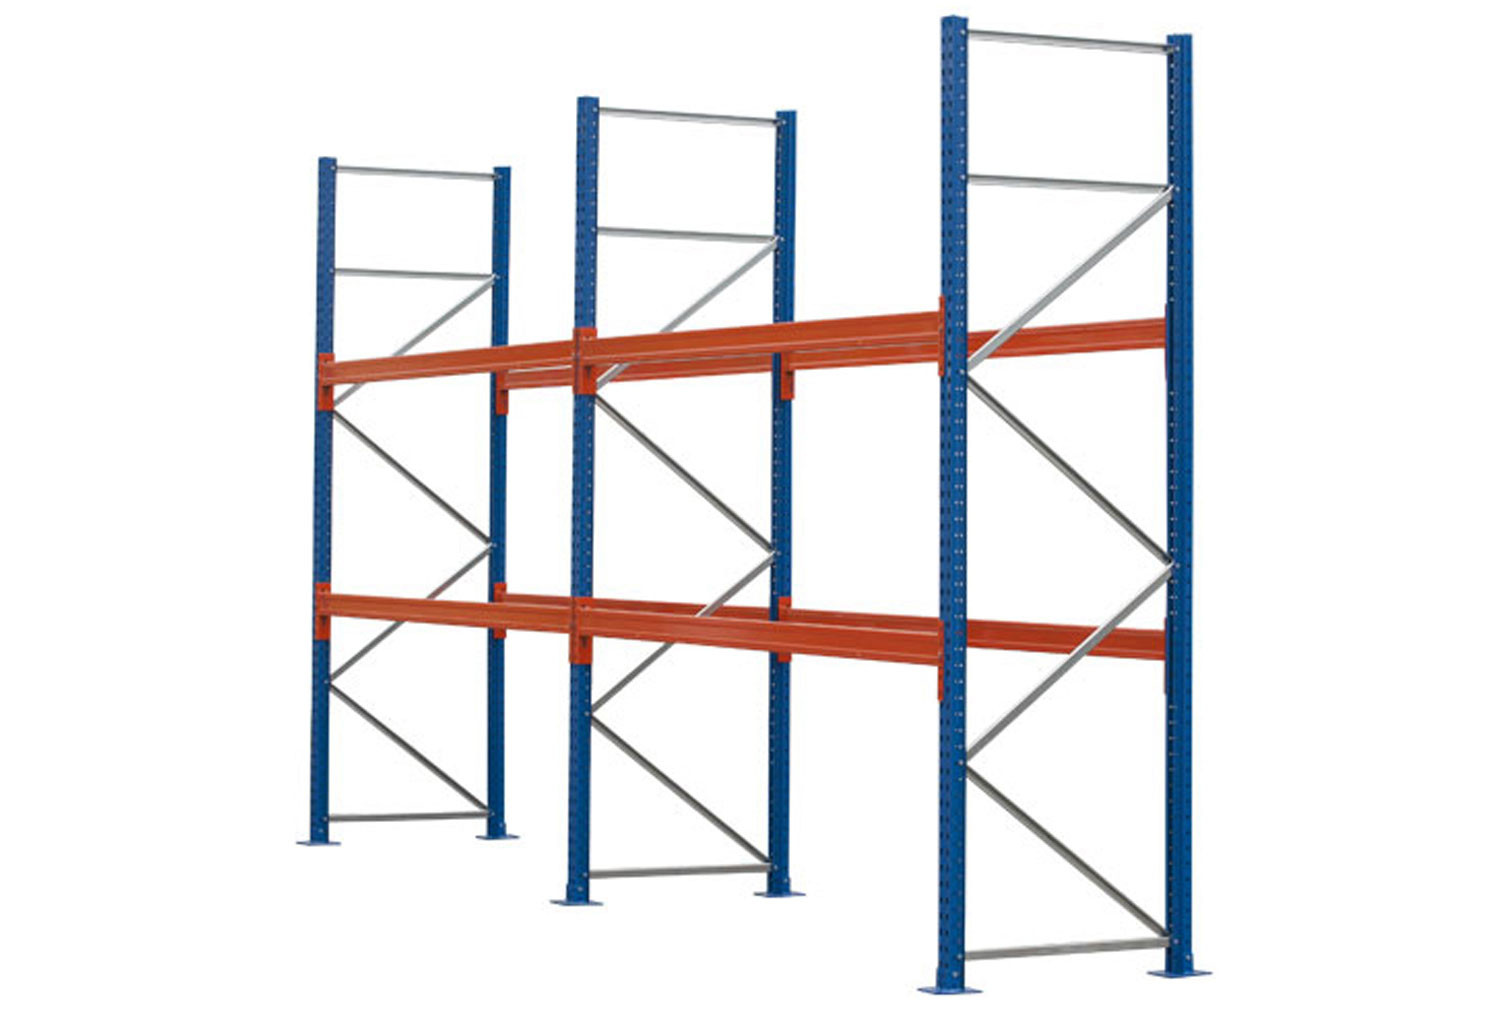 Pallet Racking Kit For 24 Pallets 11289wx4000h